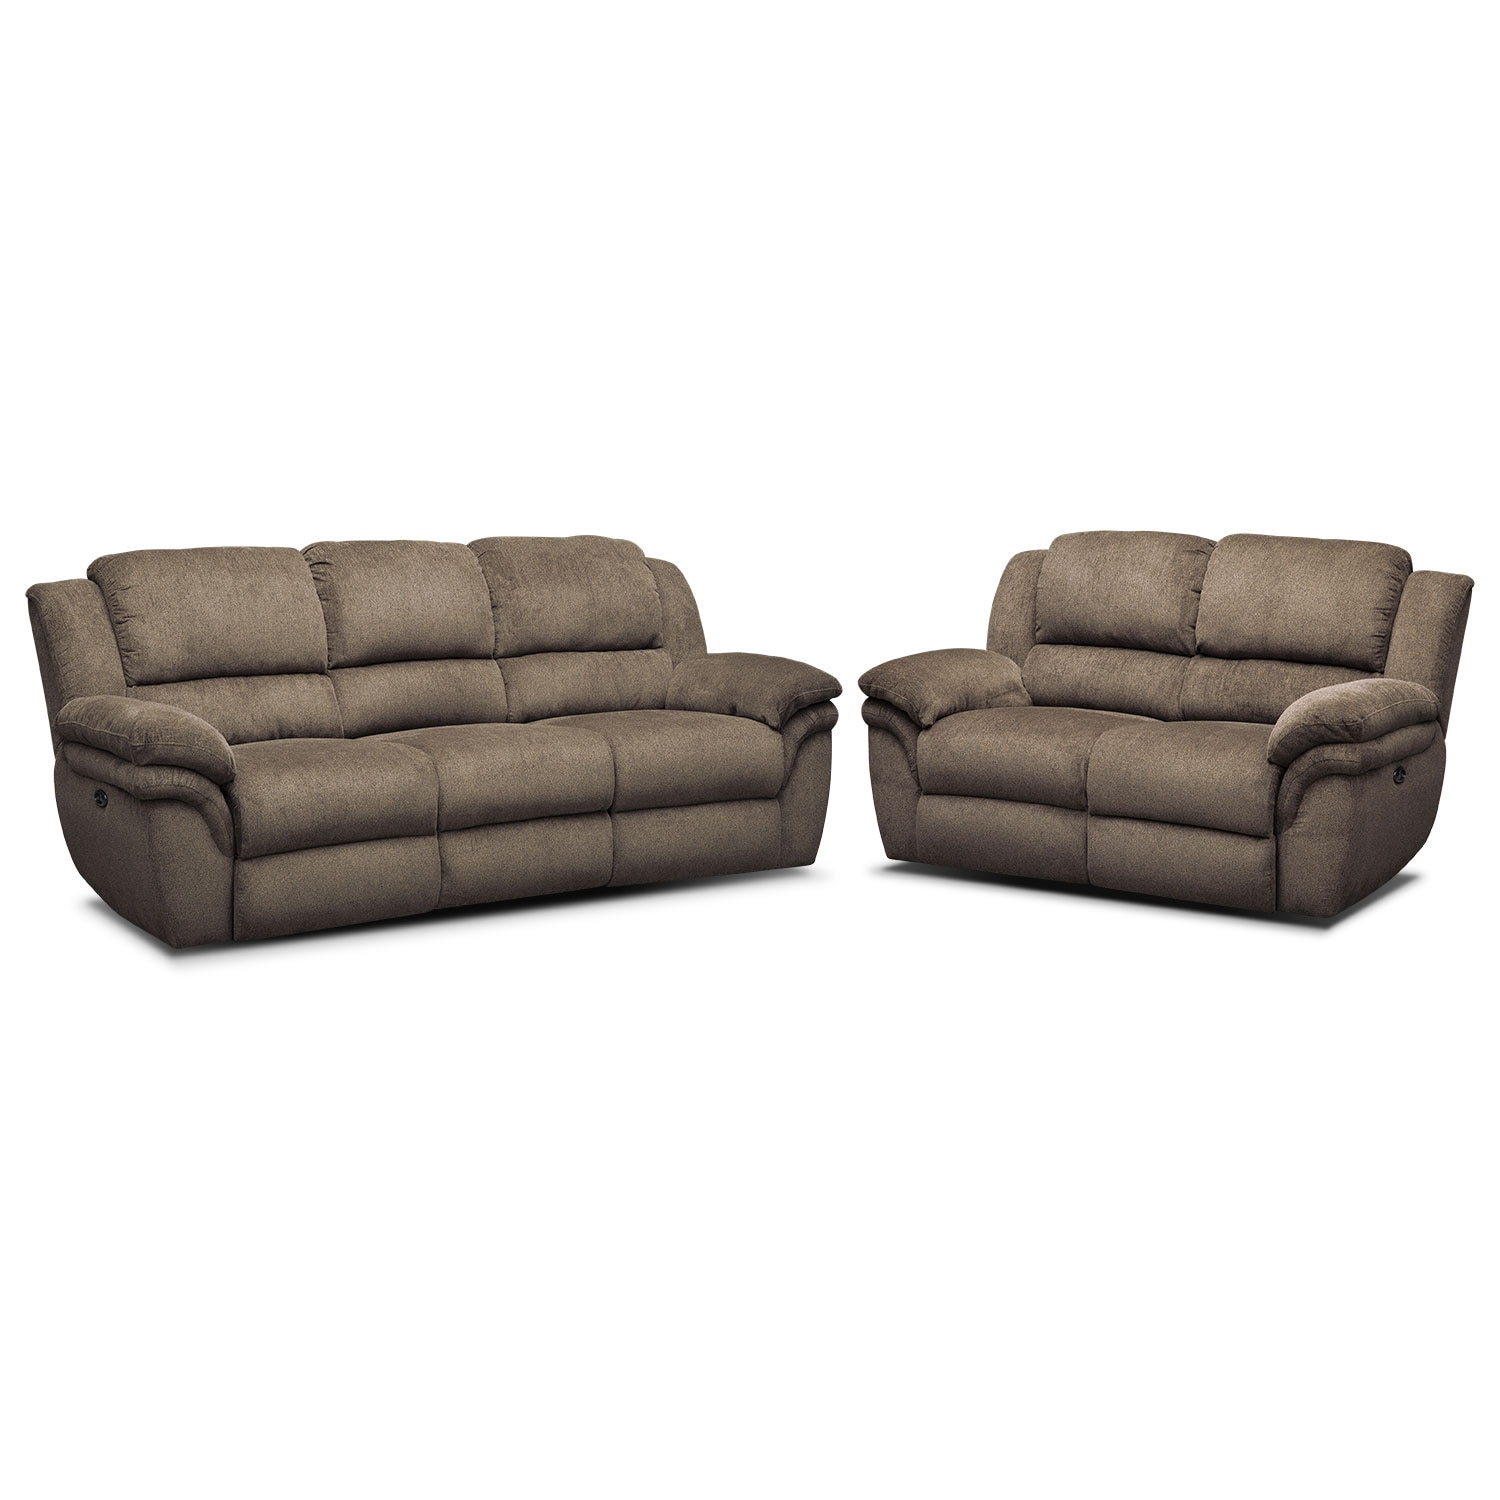 Aldo Power Reclining Sofa And Loveseat Set Mocha Value